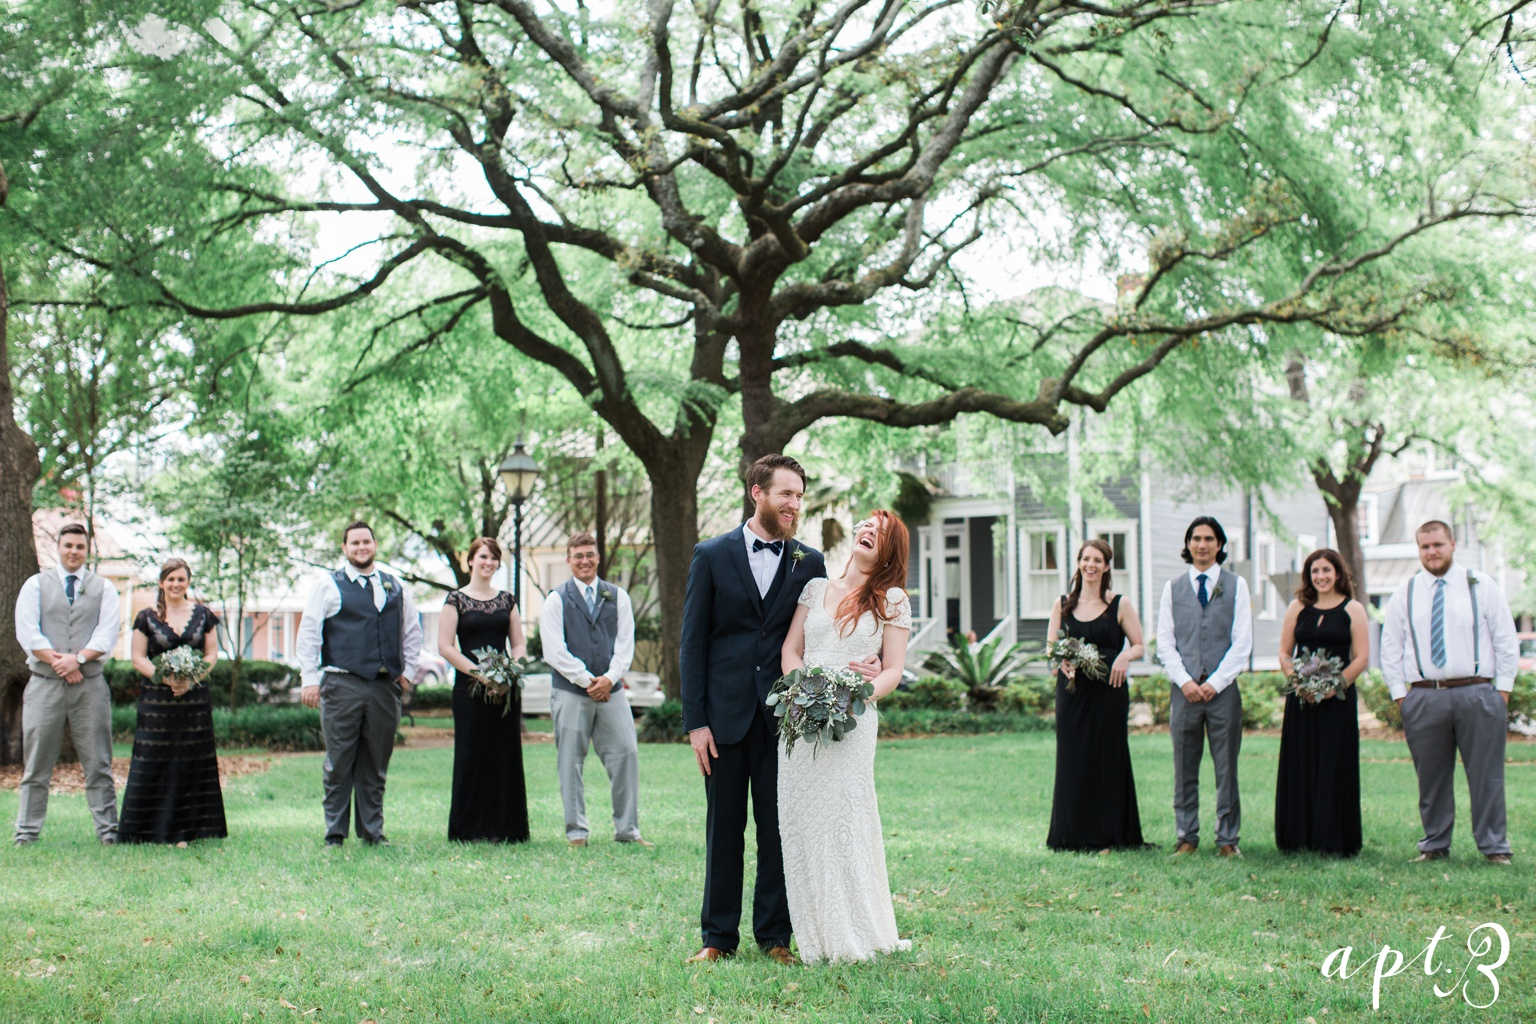 AptBPhotography_SavannahWedding_ChaBella-41.jpg